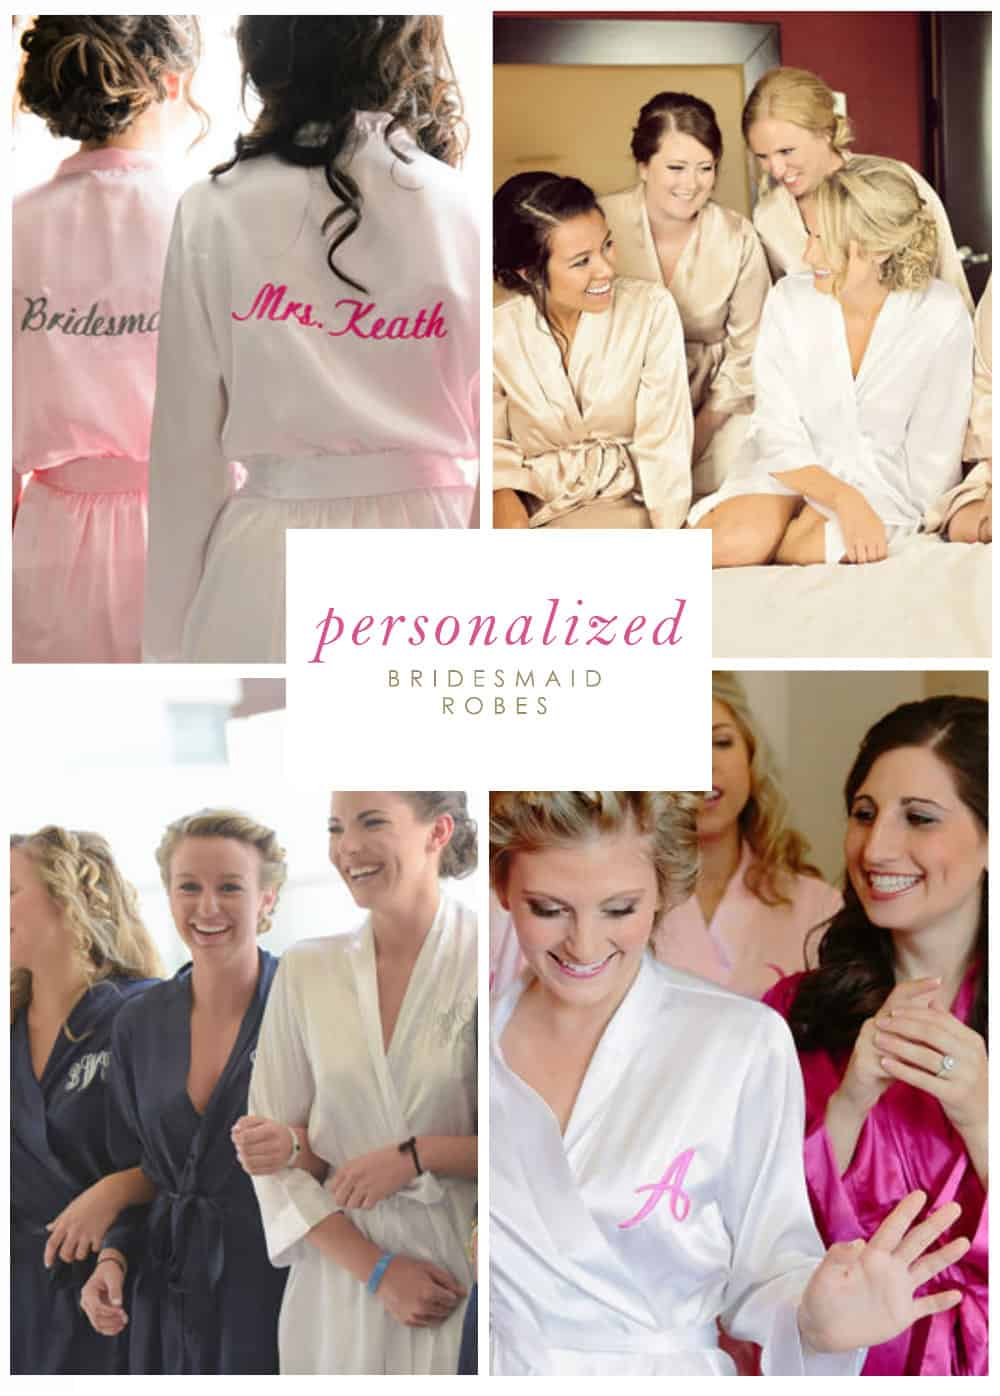 Matching personalized robes for bridesmaids